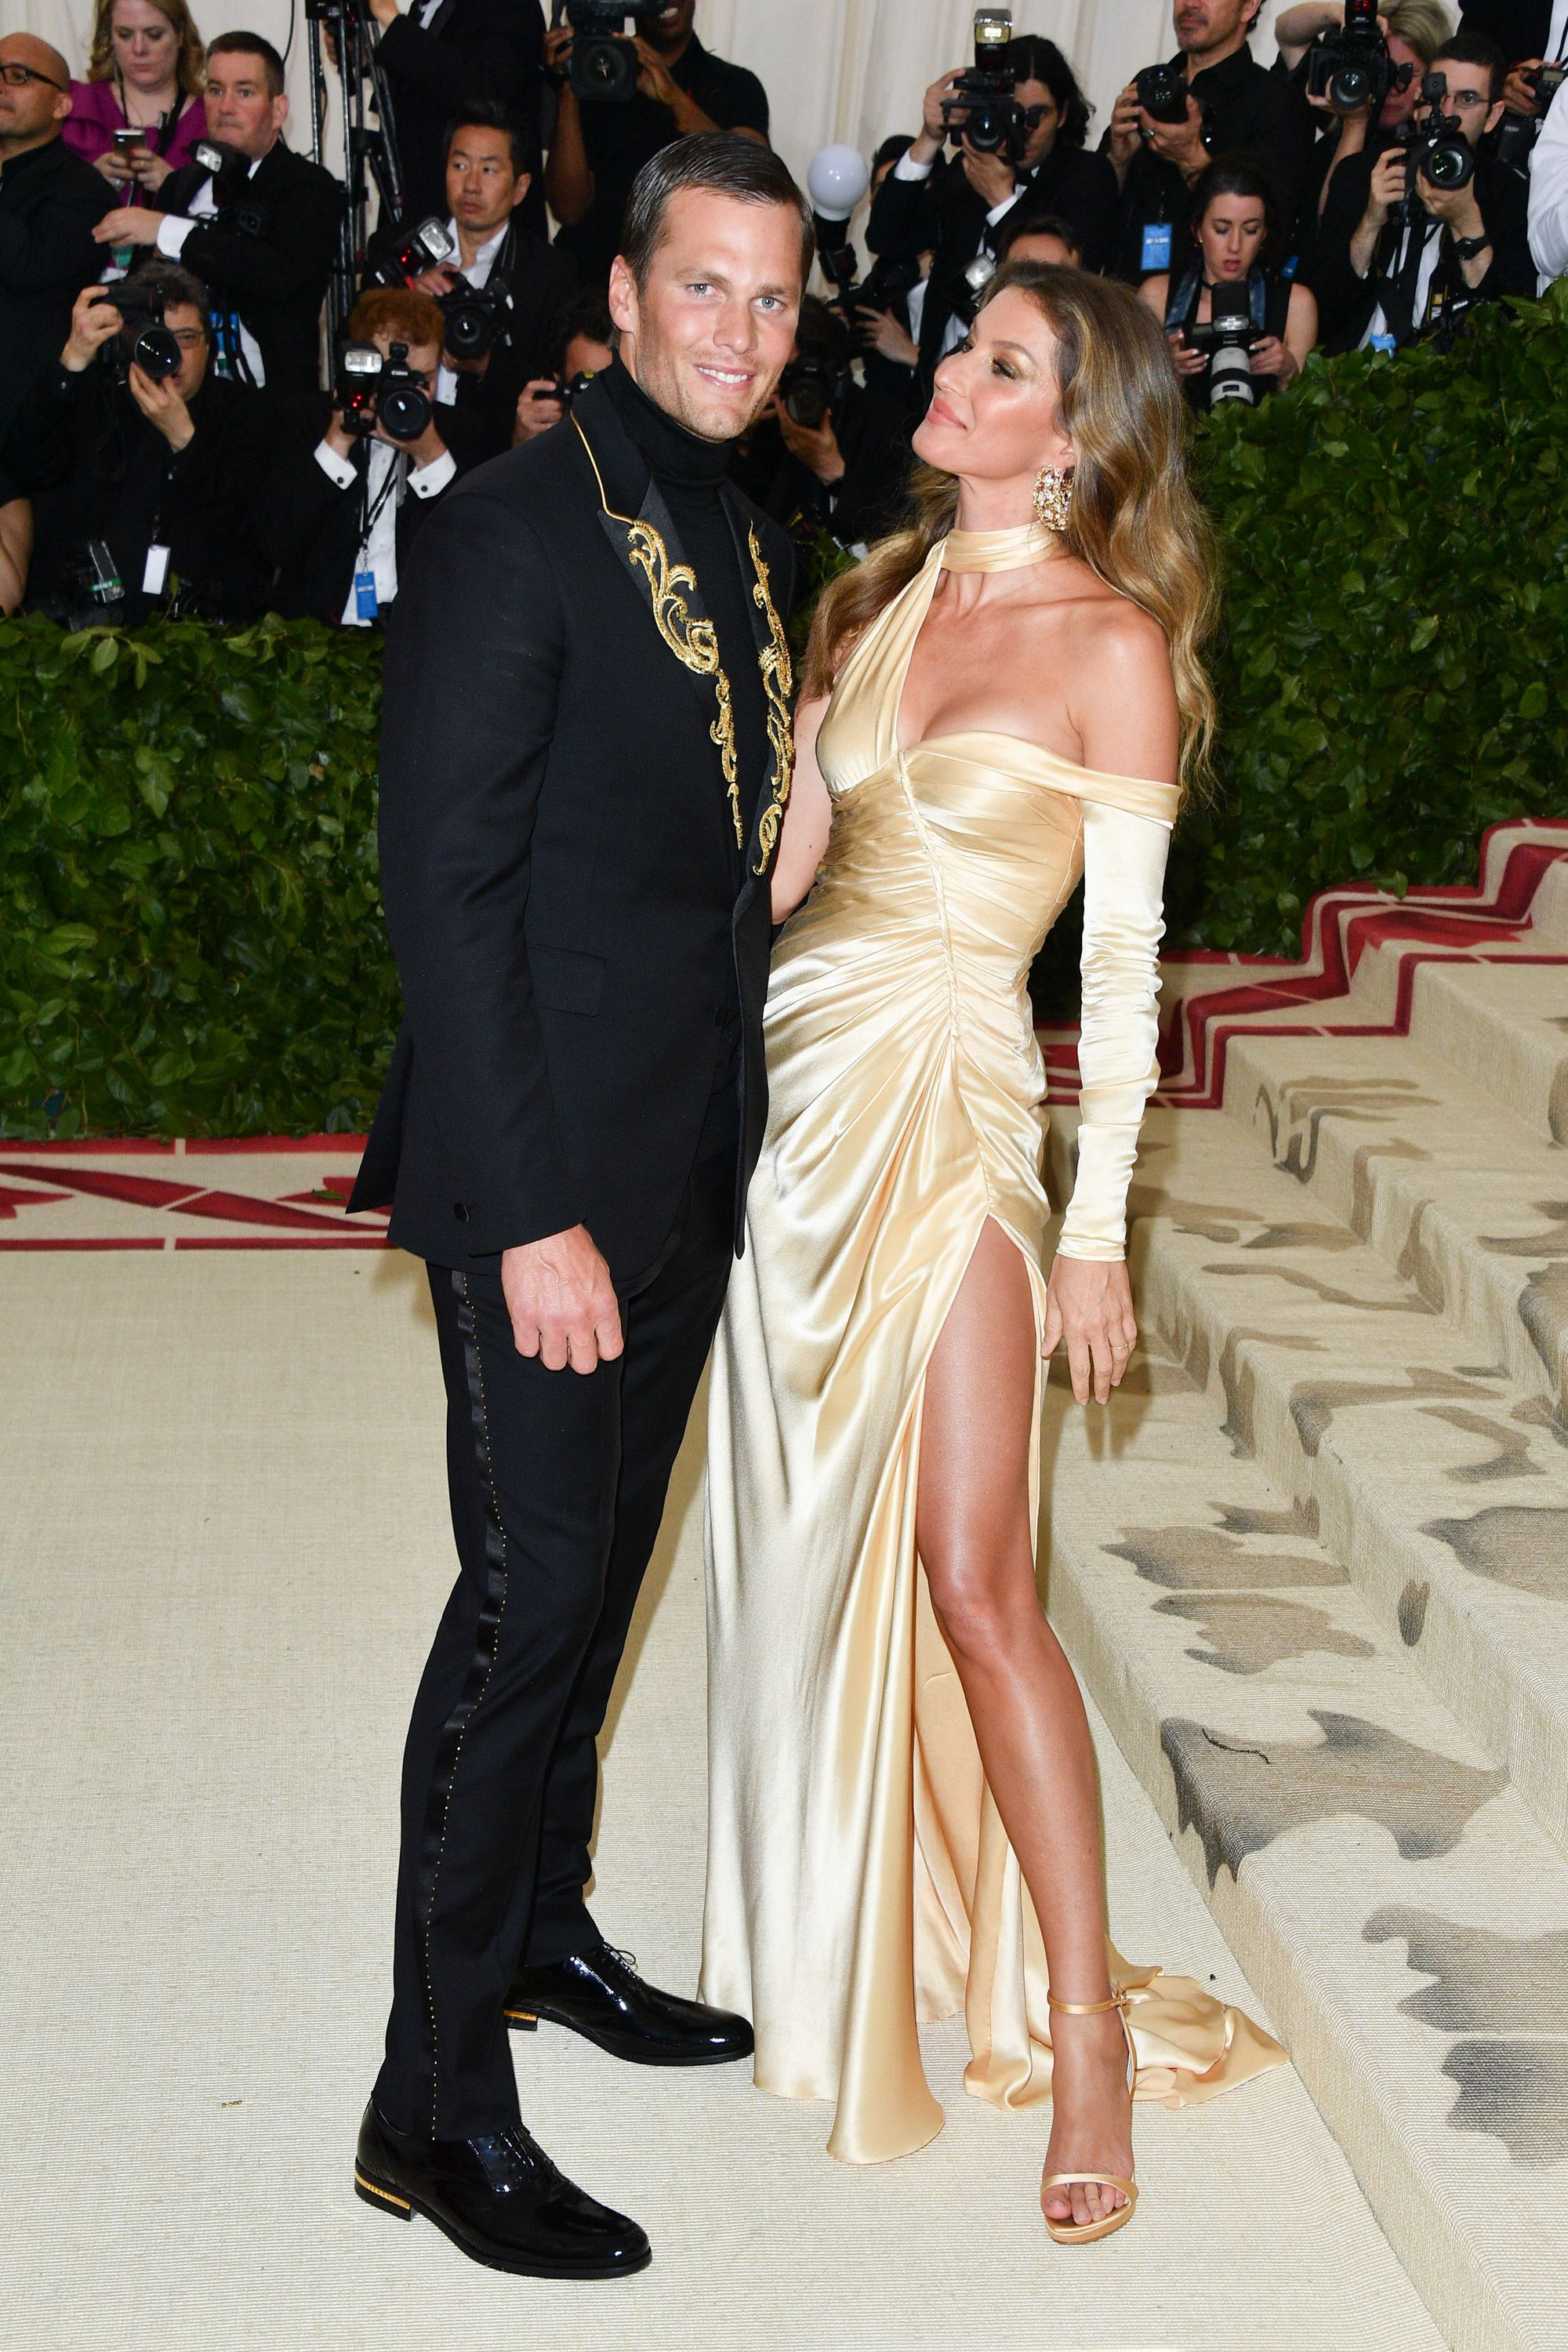 Tom Brady and Gisele Bündchen met on a blind date, too!